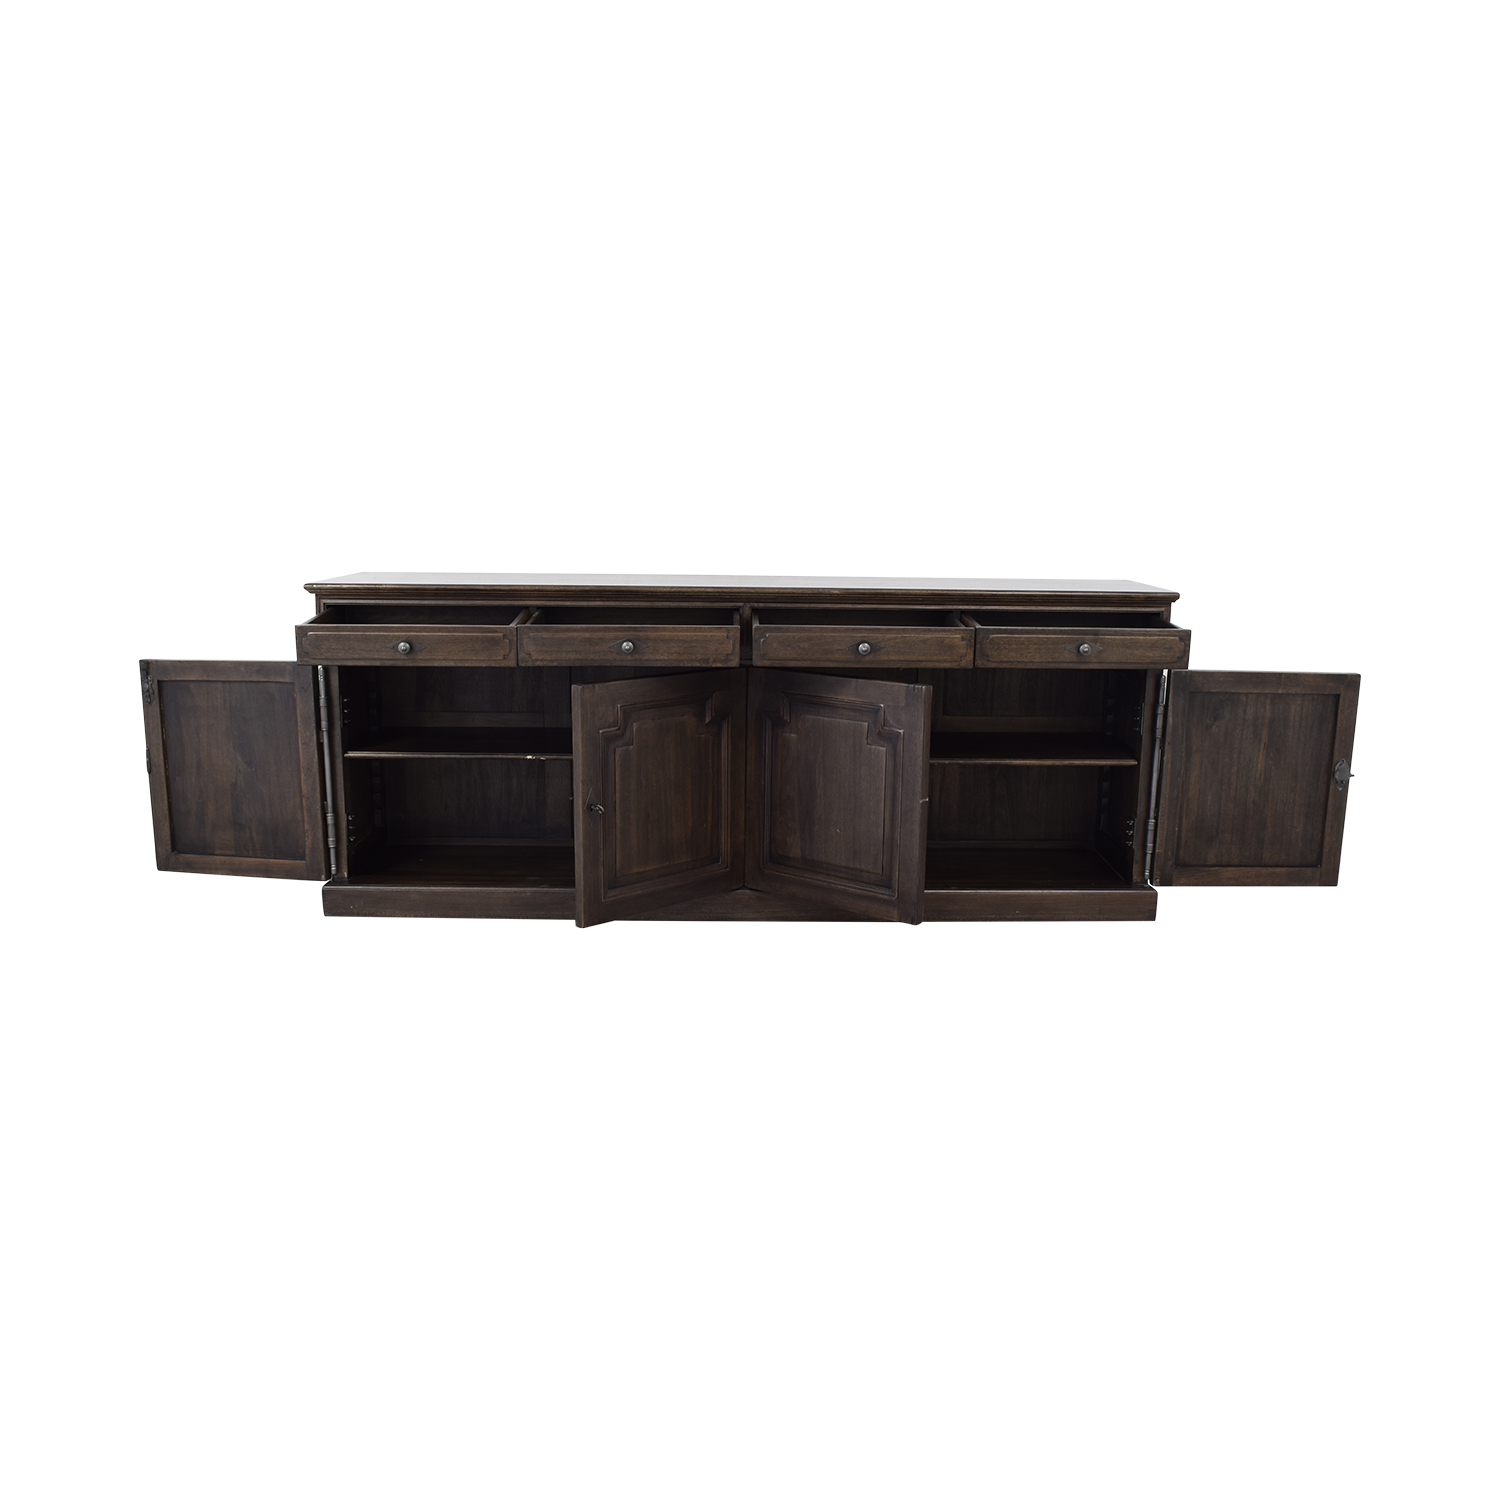 Restoration Hardware Montpellier Sideboard With Drawers / Cabinets & Sideboards